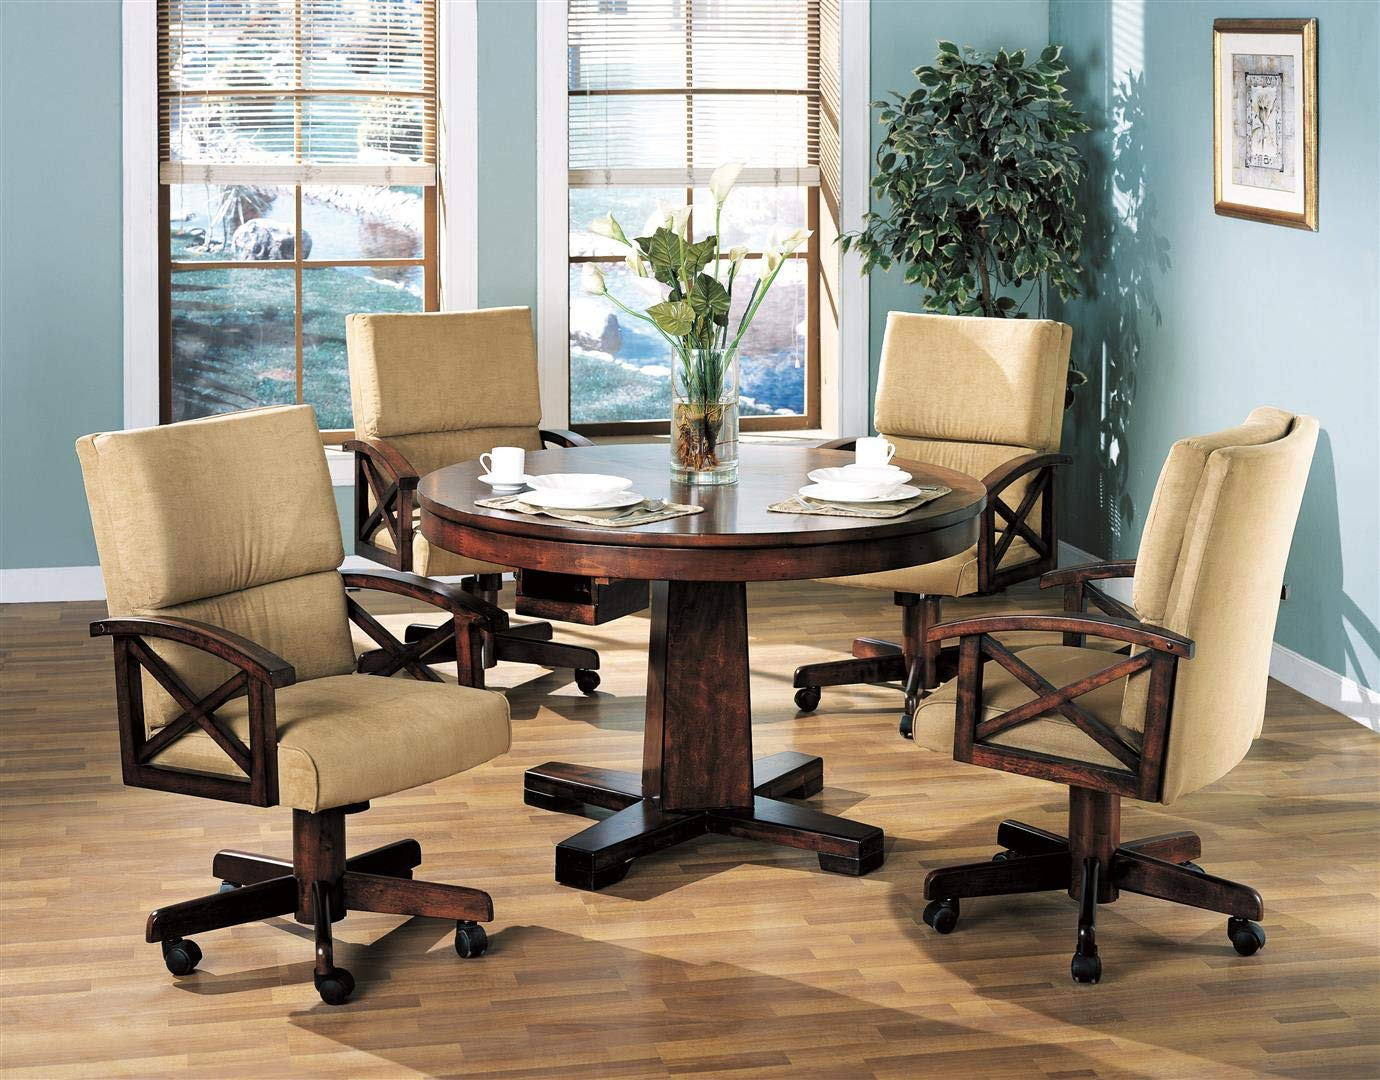 Coaster Home Furnishings Marietta 5-Piece Game Table Dining Set Tobacco and Tan by Coaster Home Furnishings